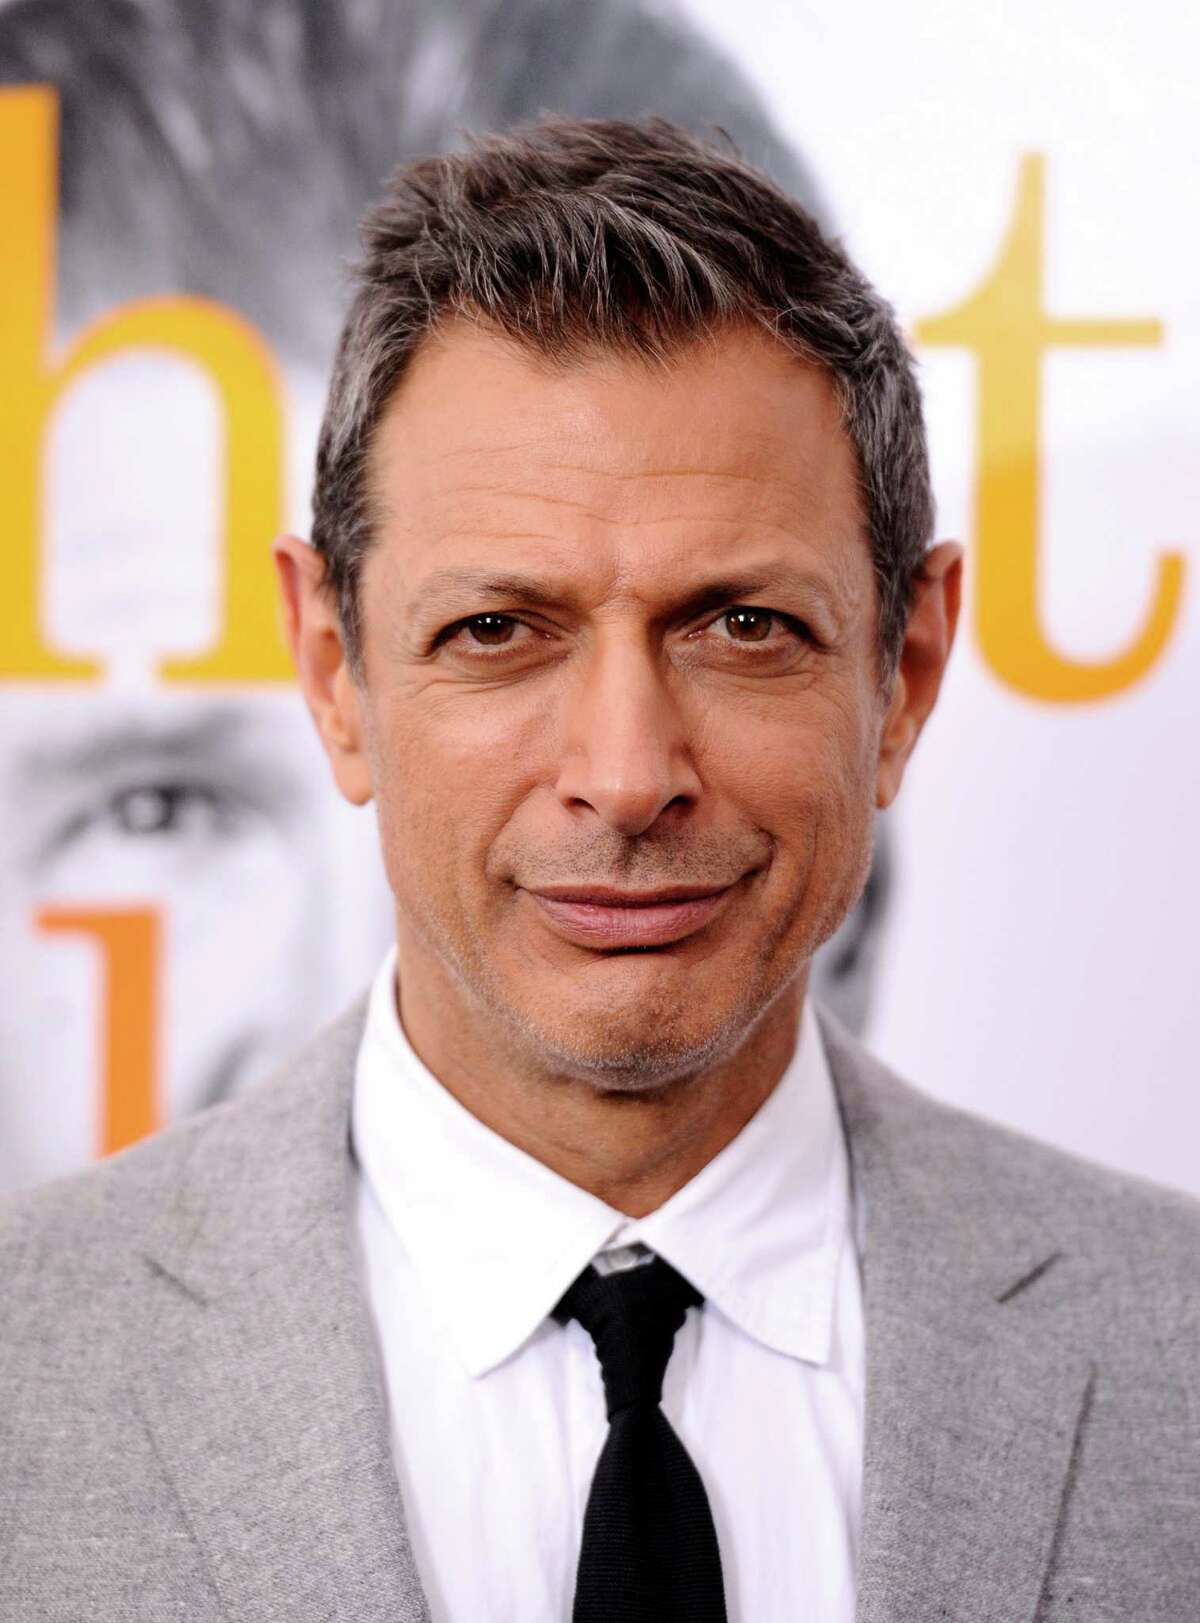 FILE - In this Nov. 7, 2010 file photo, Jeff Goldblum attends the premiere of